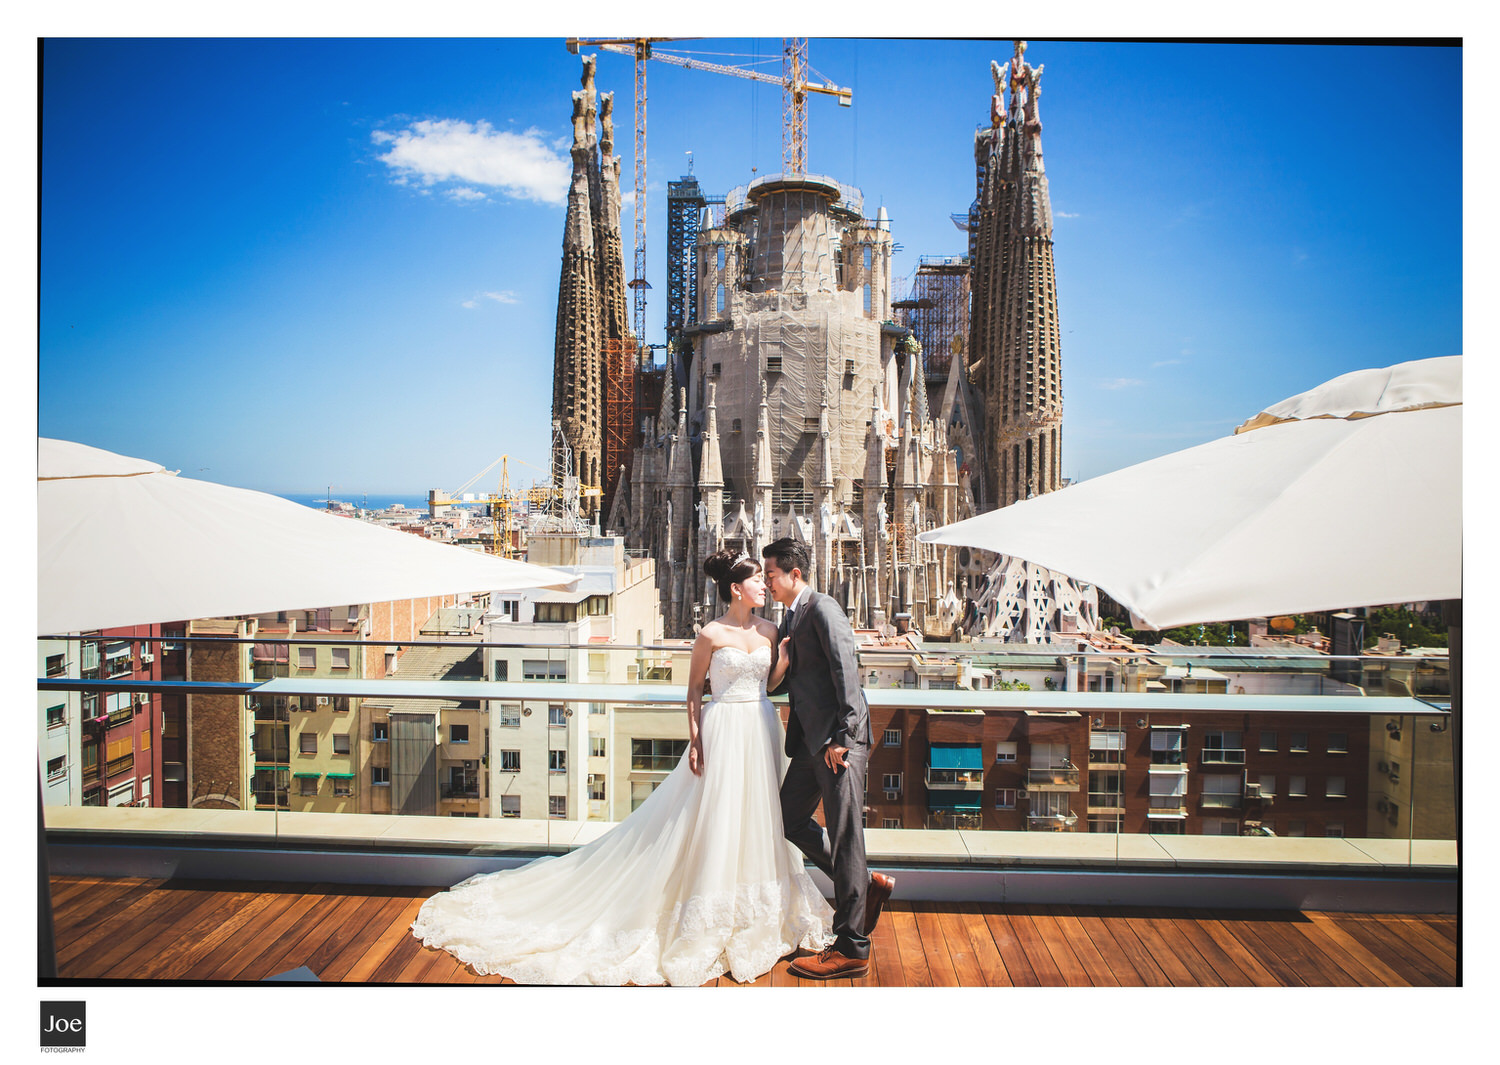 joe-fotography-17-barcelona-sagrada-familia-pre-wedding-linda-colin.jpg